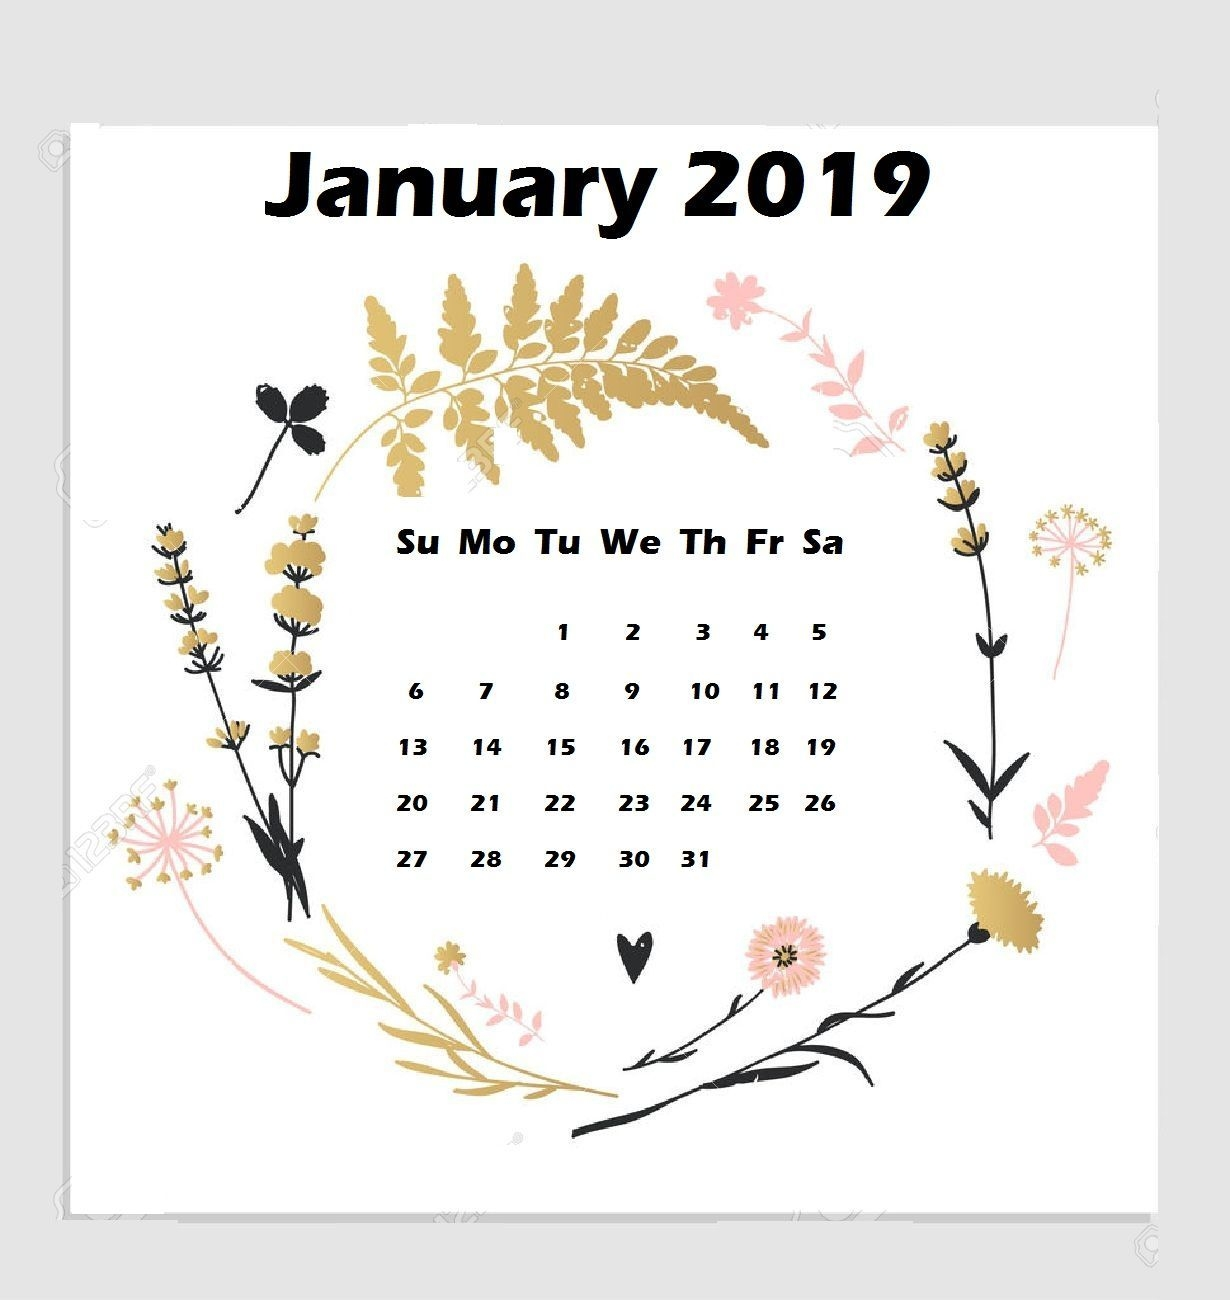 January 2019 Iphone Calendar Wallpaper | Calendar Wallpaper